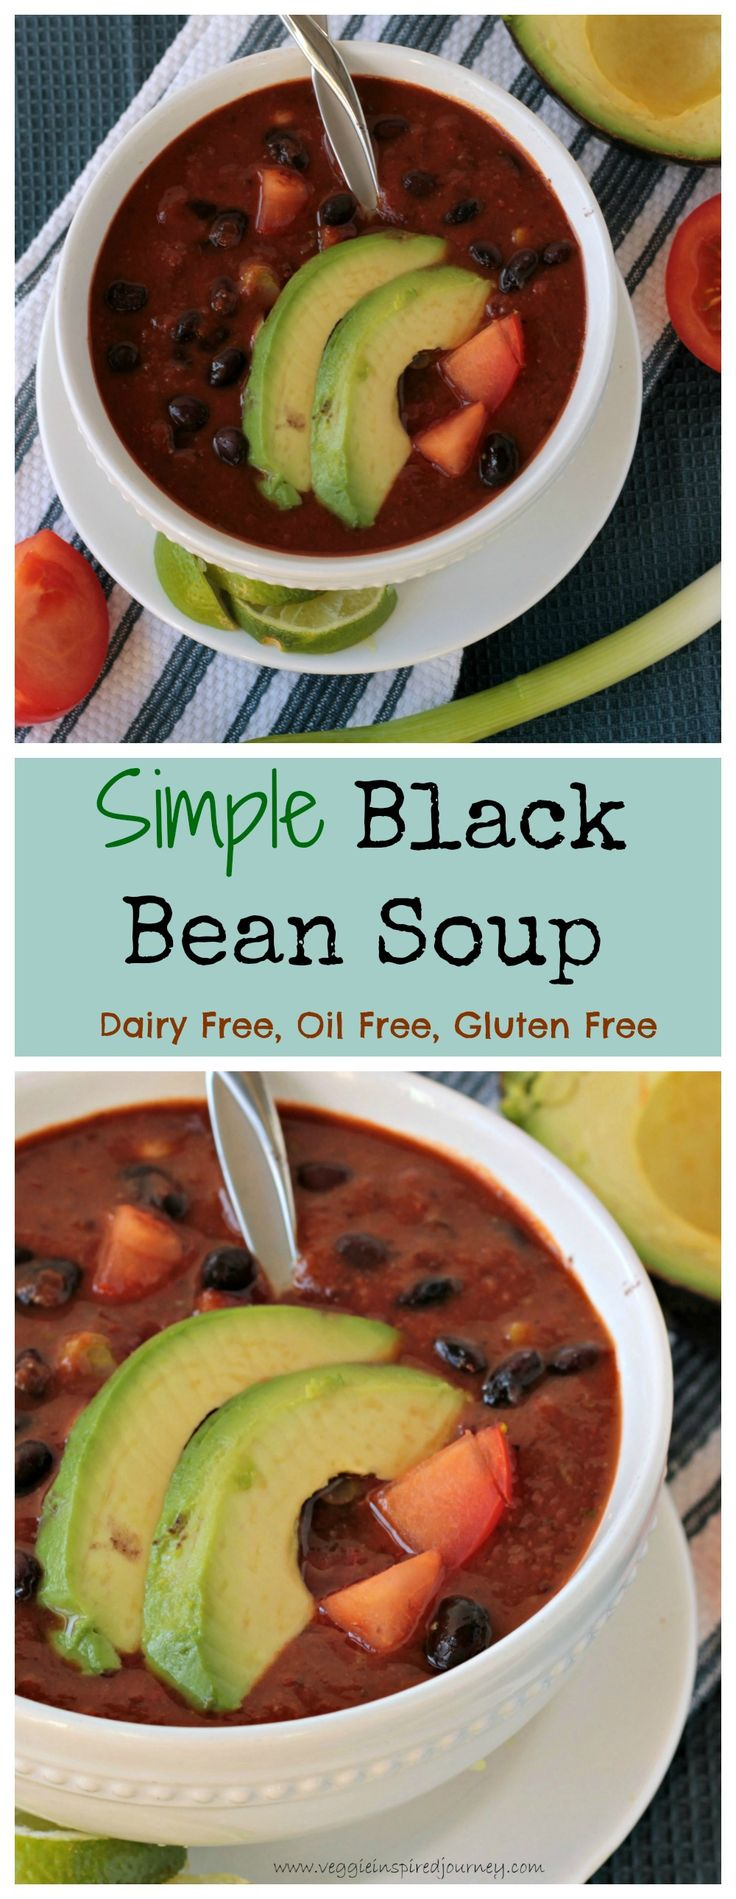 Simple Black Bean Soup - only 6 ingredients and on the table in less than 30 minutes! Gluten free, dairy free, oil free, vegan!